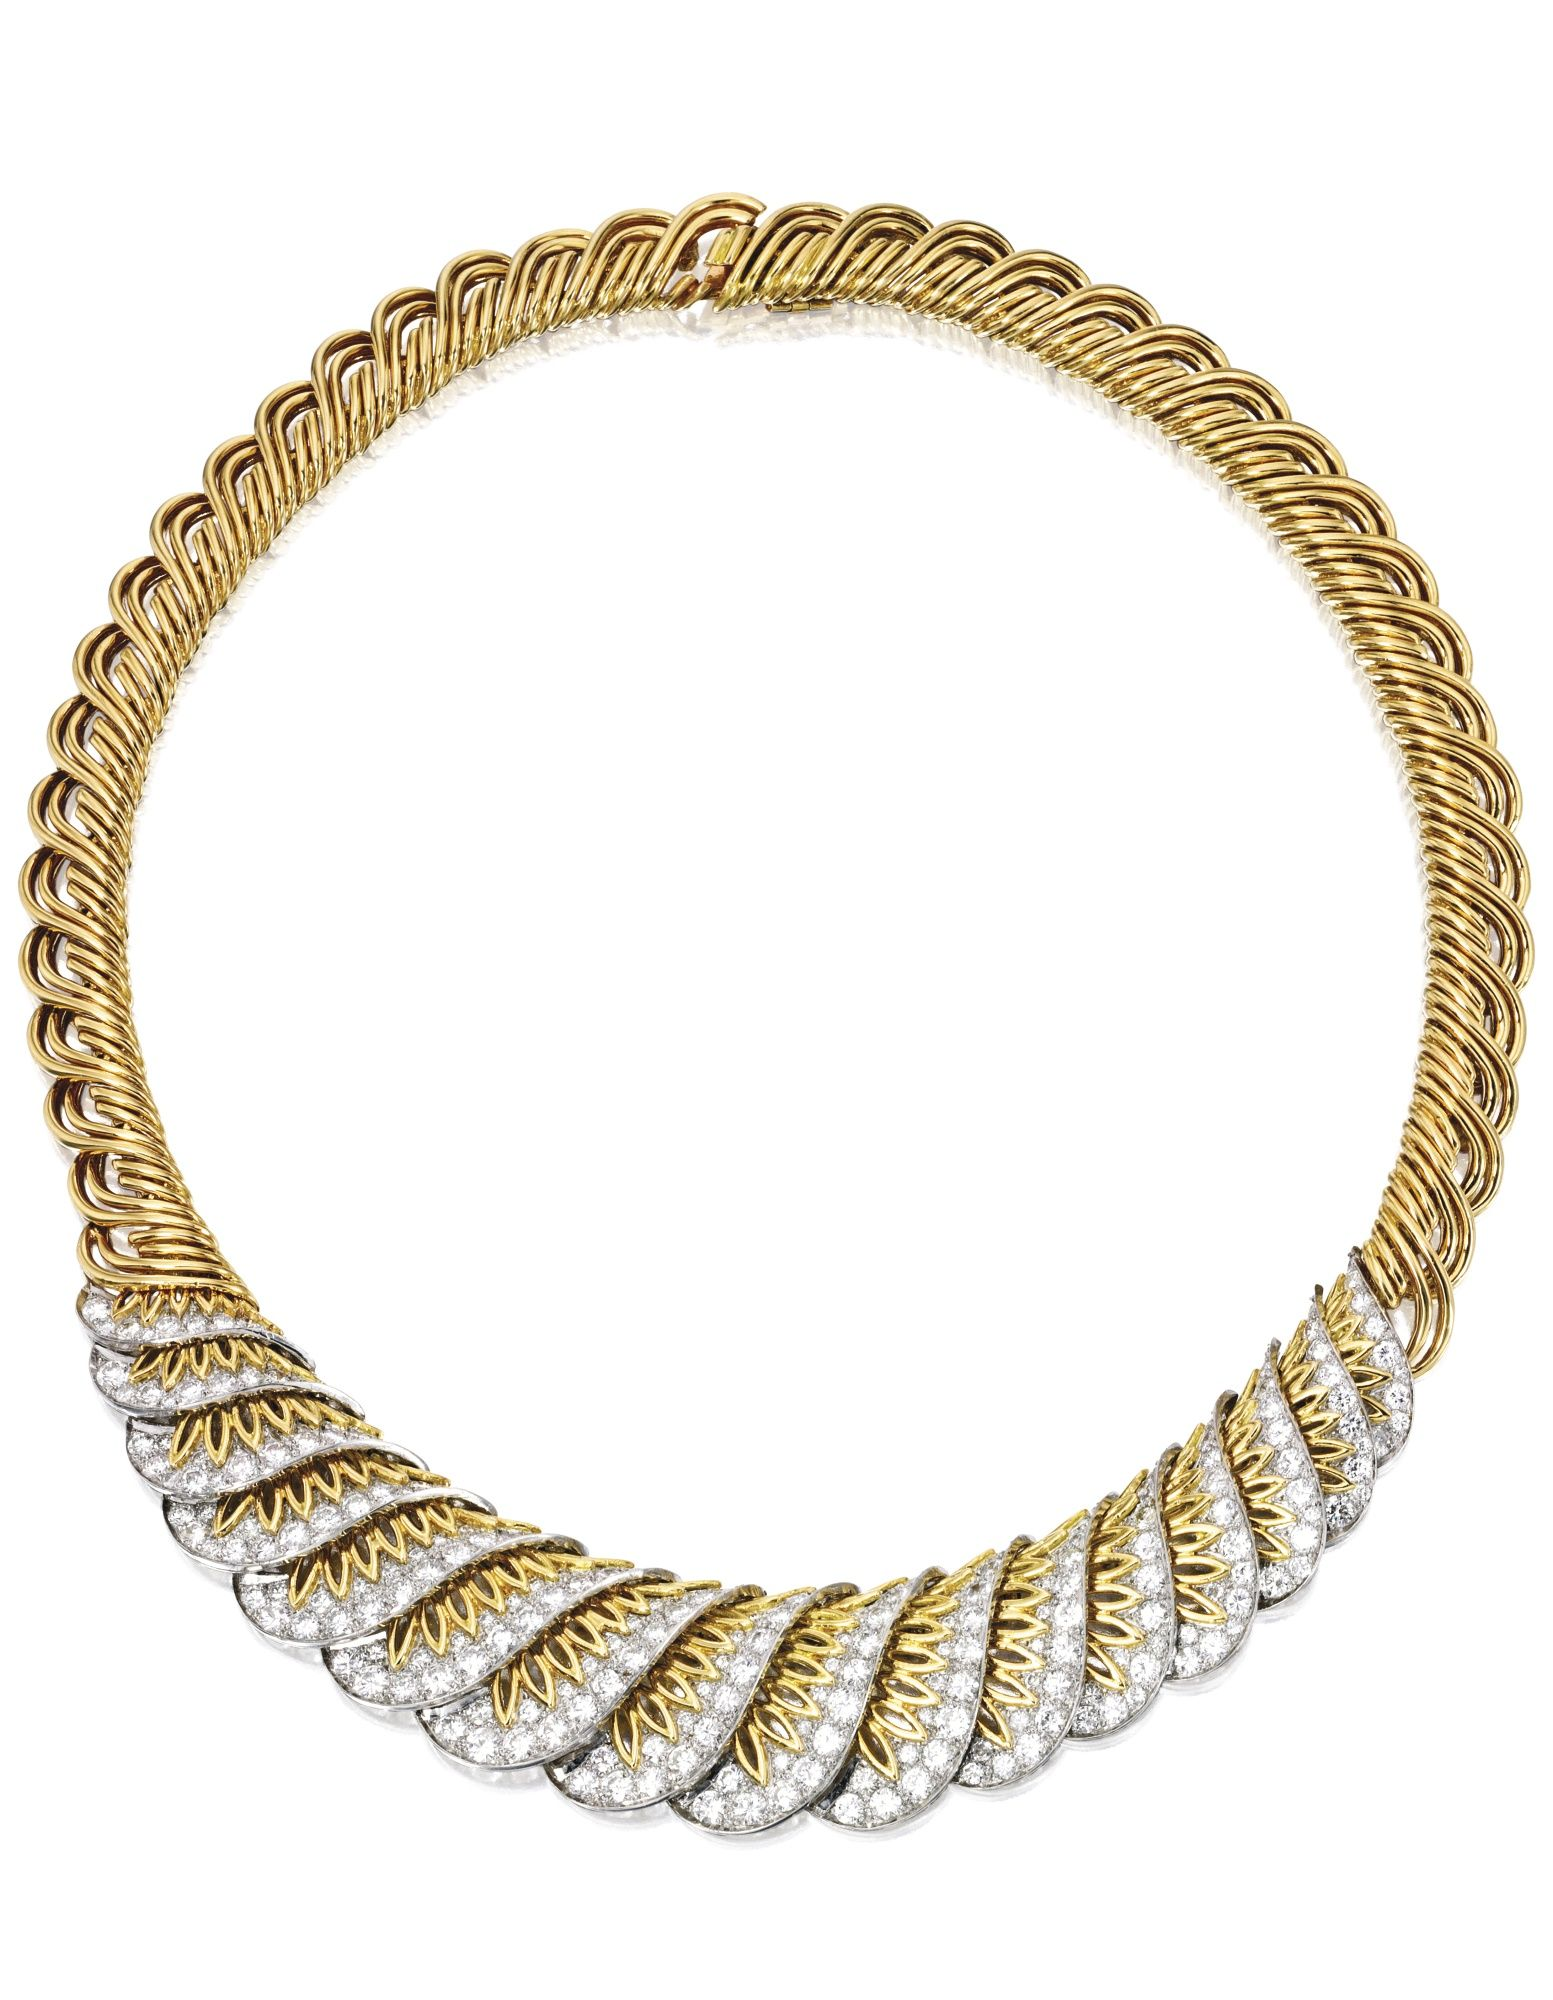 karat gold platinum and diamond necklace cartier paris circa